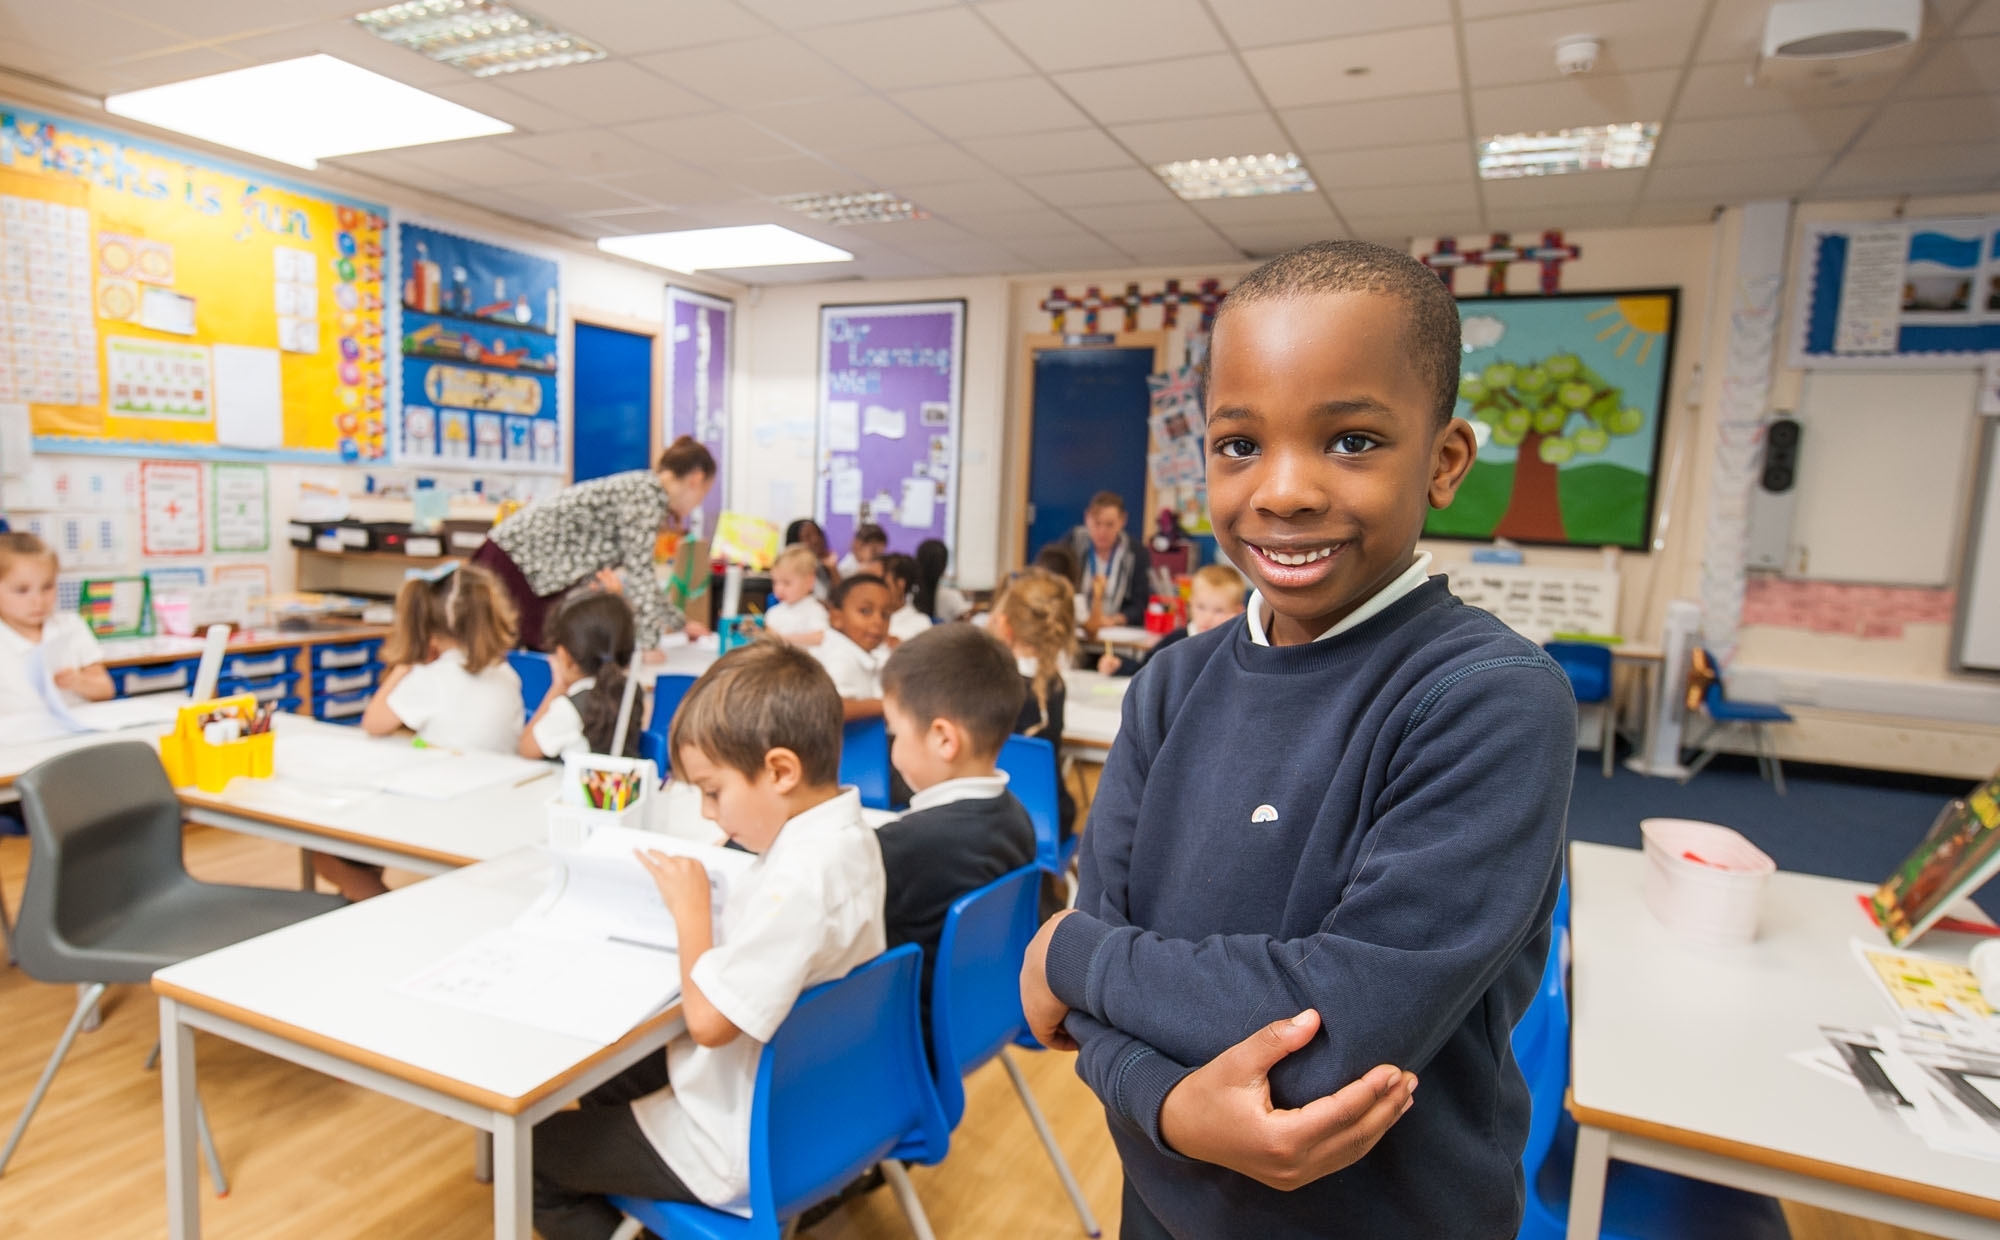 Pupils in a lesson at St Philip's CE Primary School